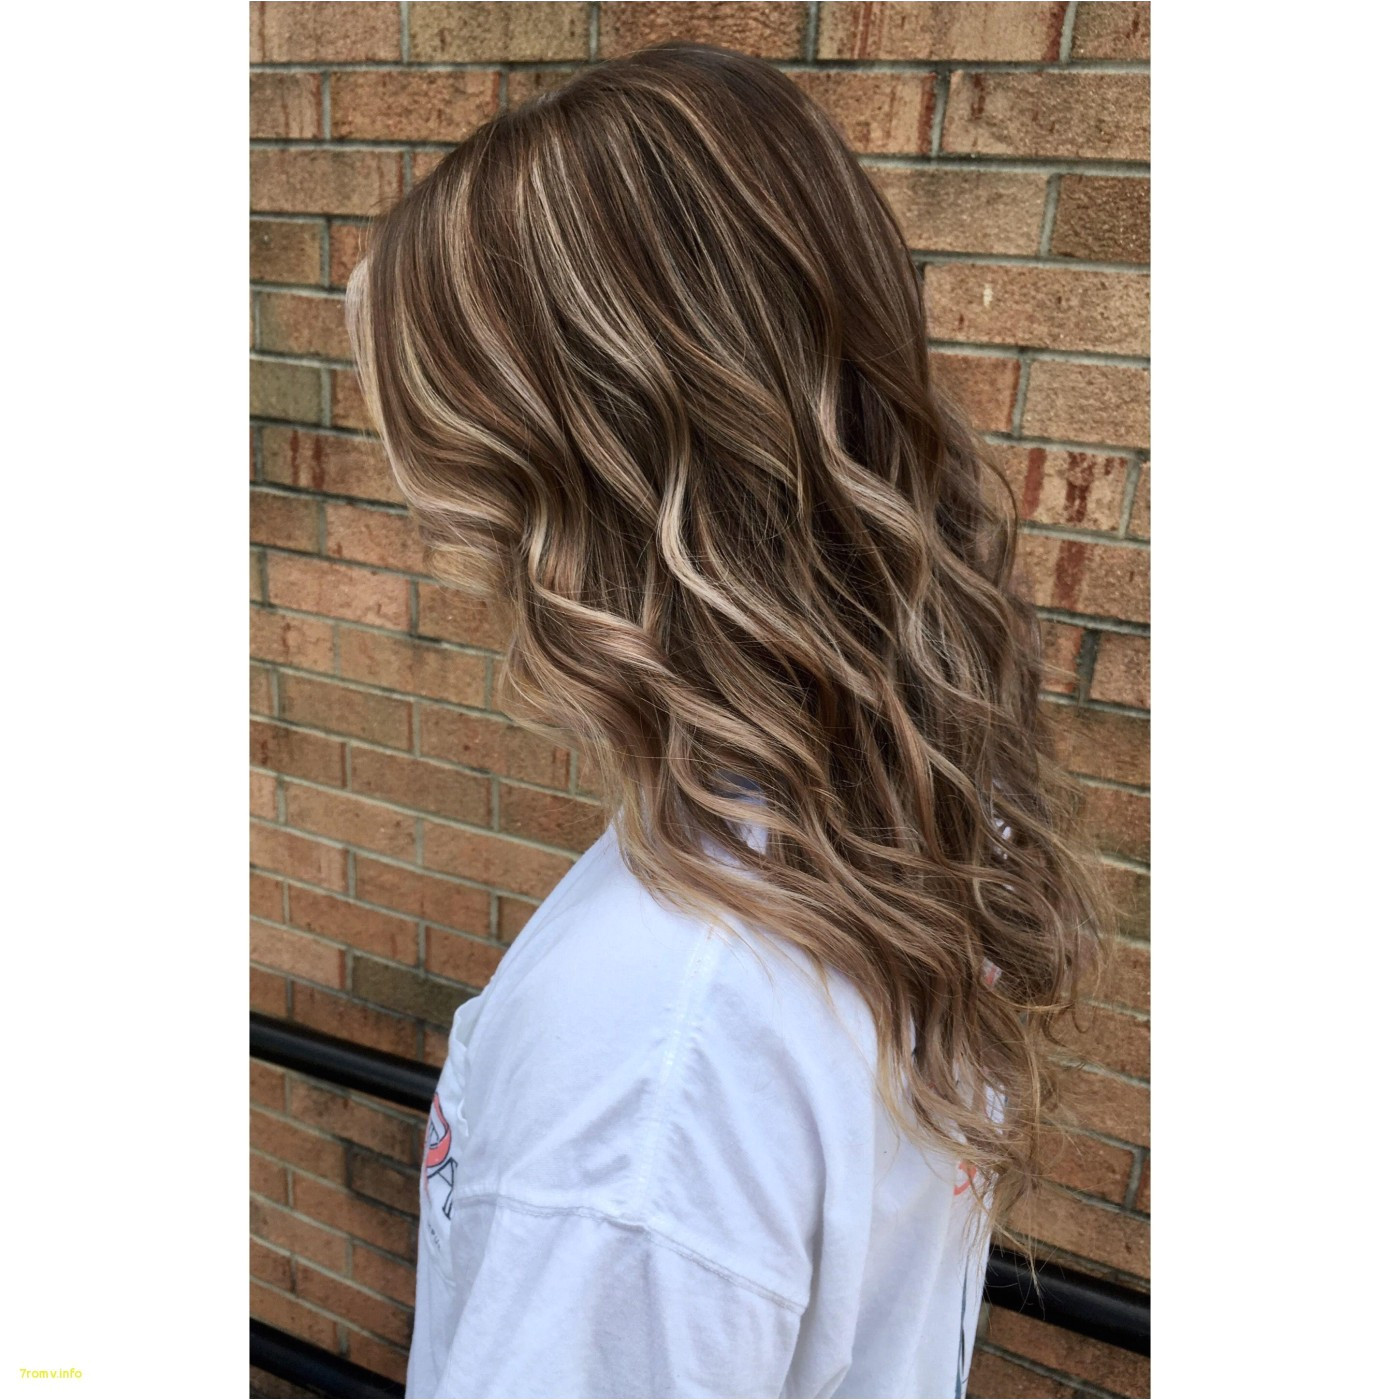 007 Light Brown Hair Color Picture Elegant With Blonde Highlights Inspirational Od Dark Dye For